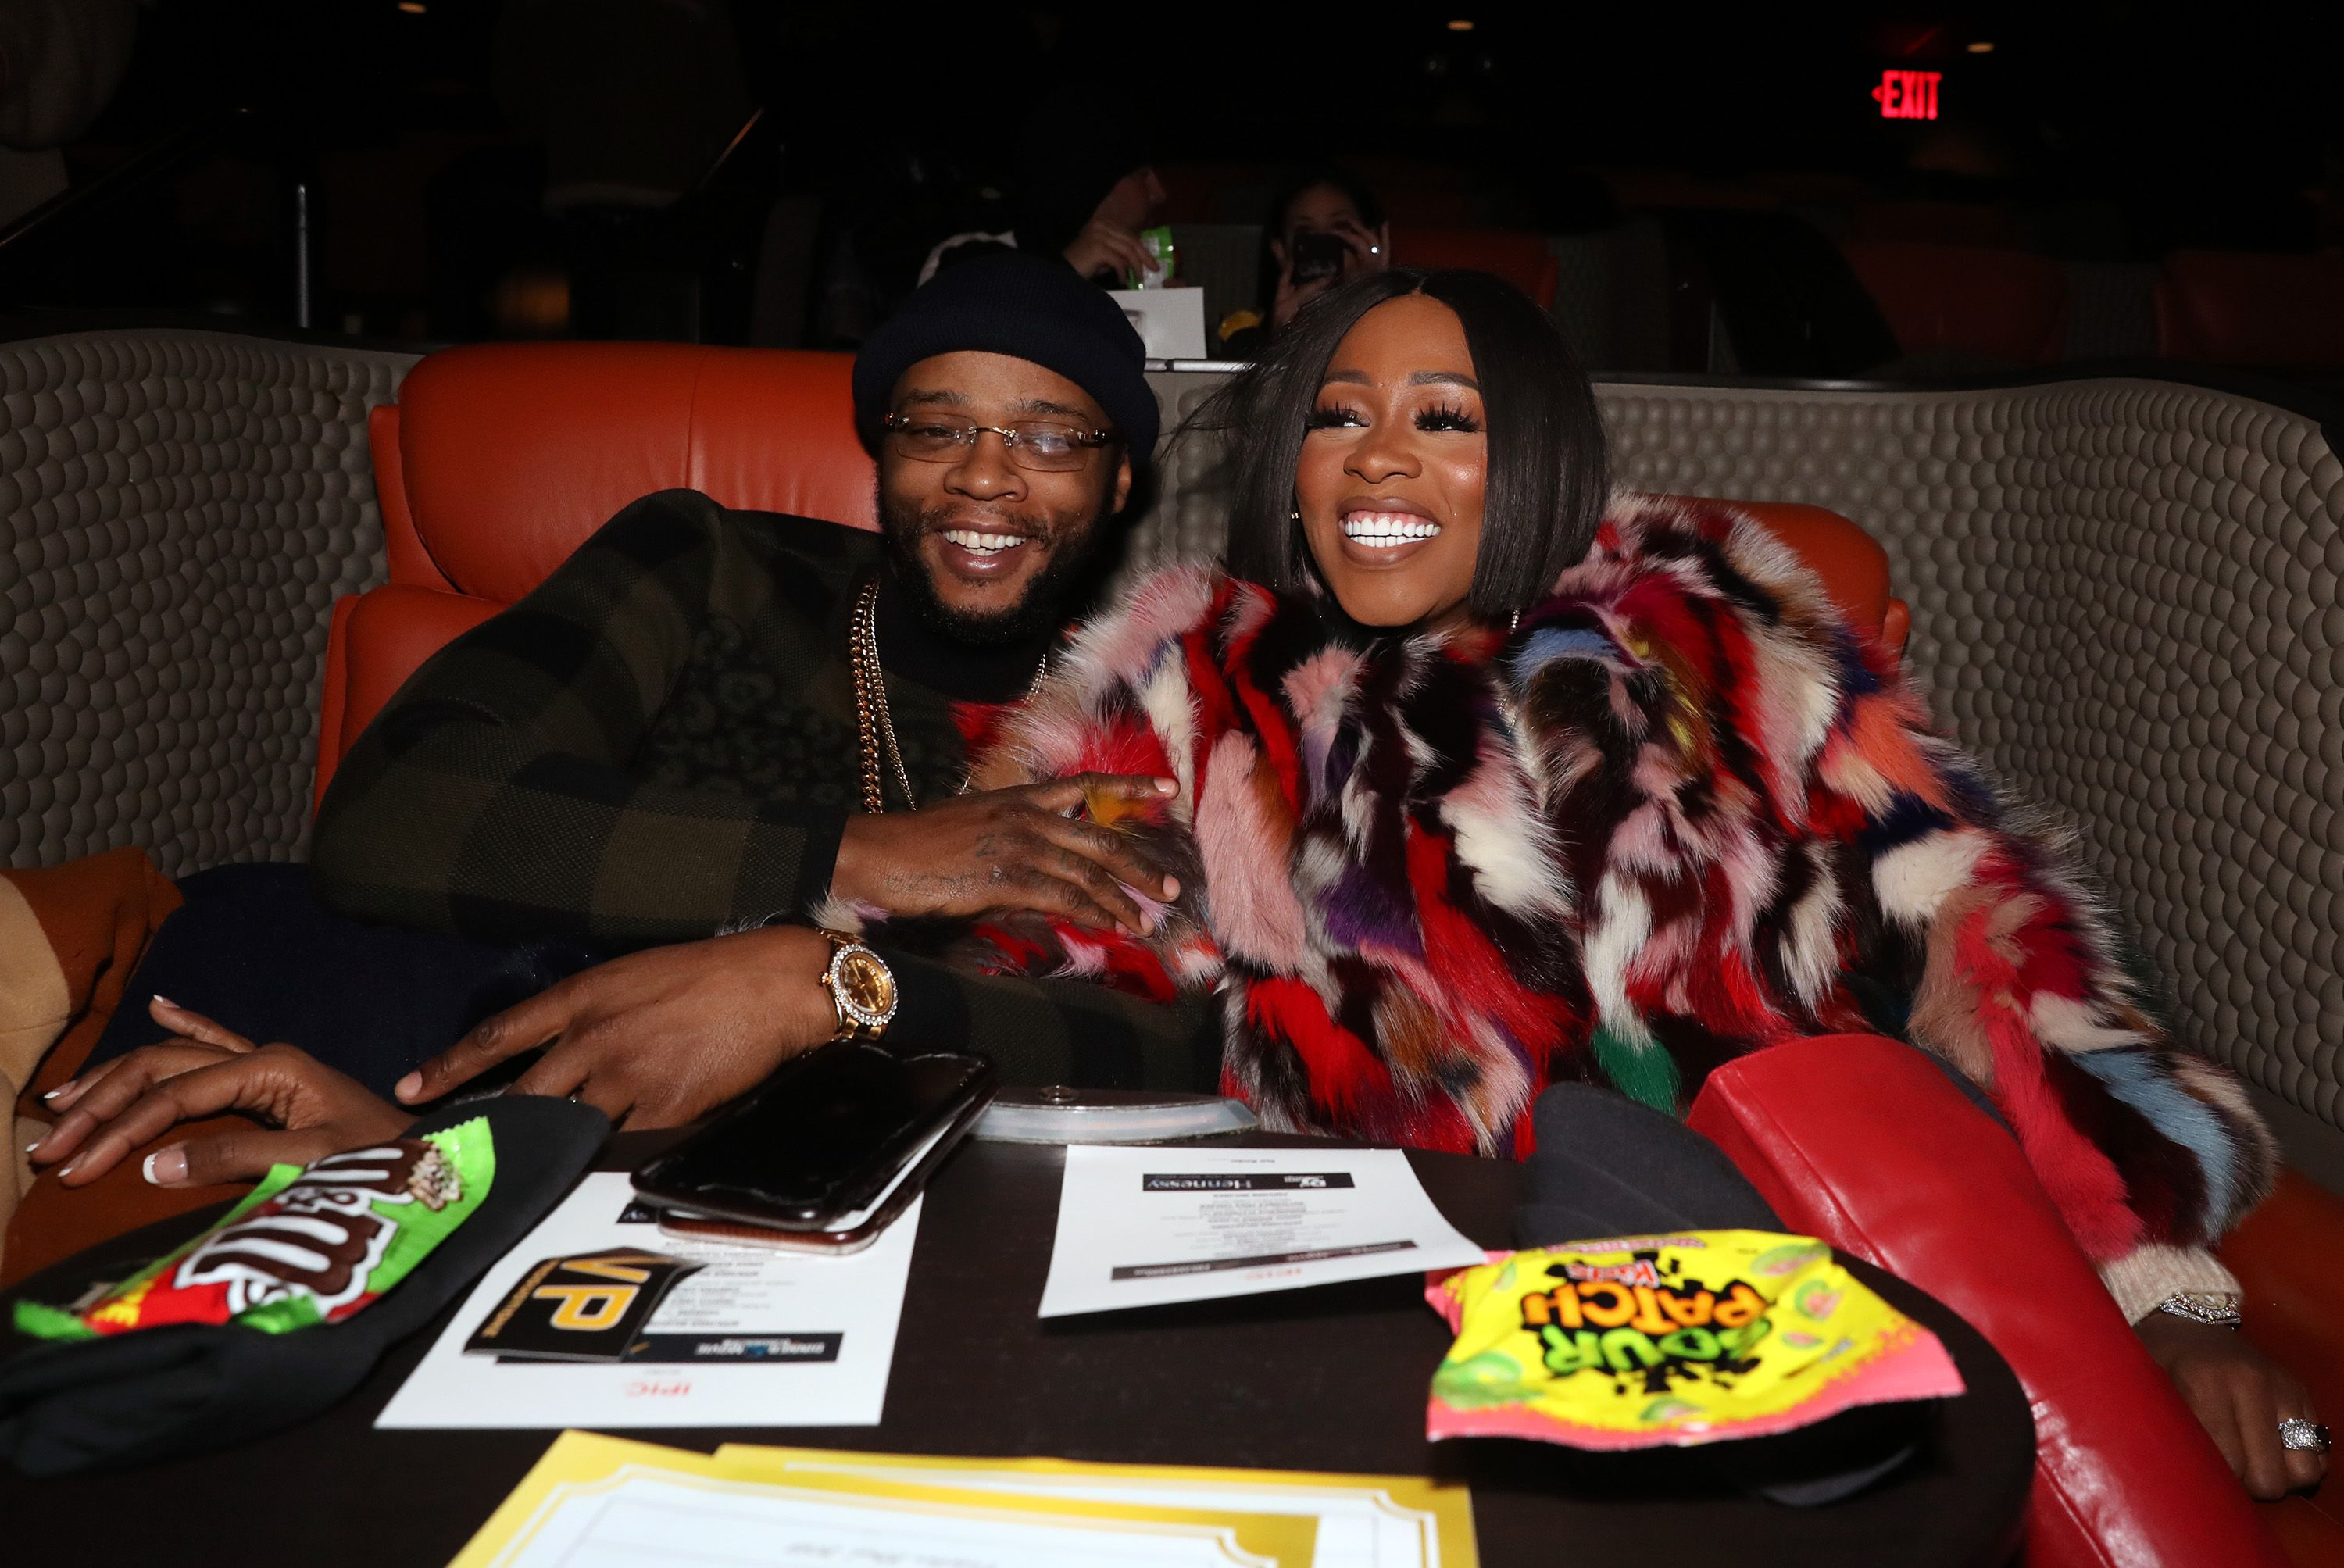 """Papoose and Remy Ma at the """"Suss-One Dinner and a Movie"""" at iPic Theater on December 19, 2019. 